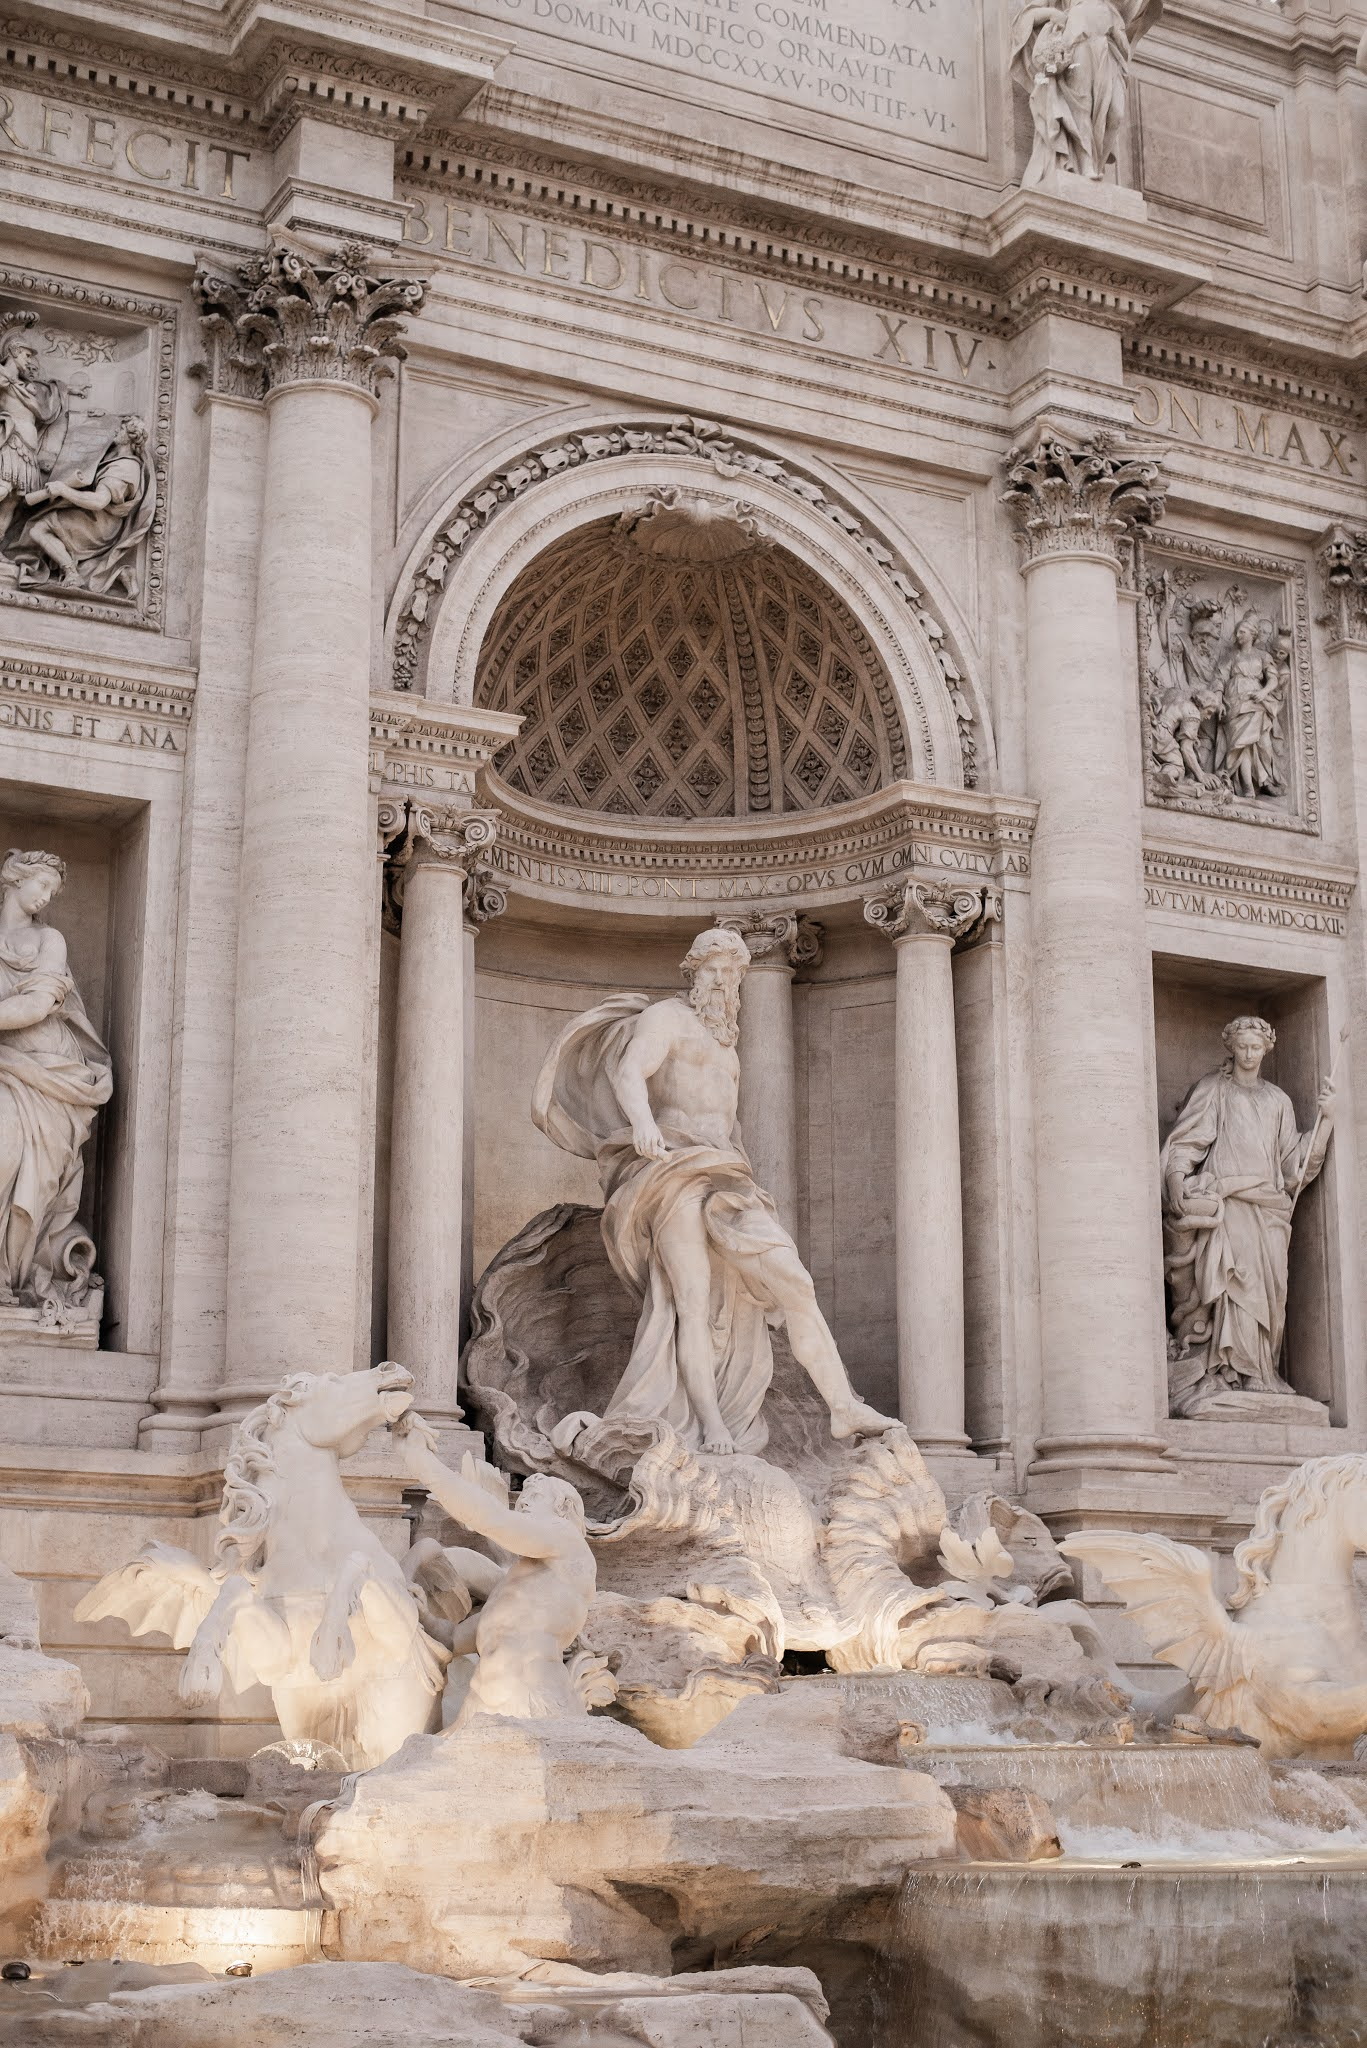 central sculpture of trevi fountain in rome